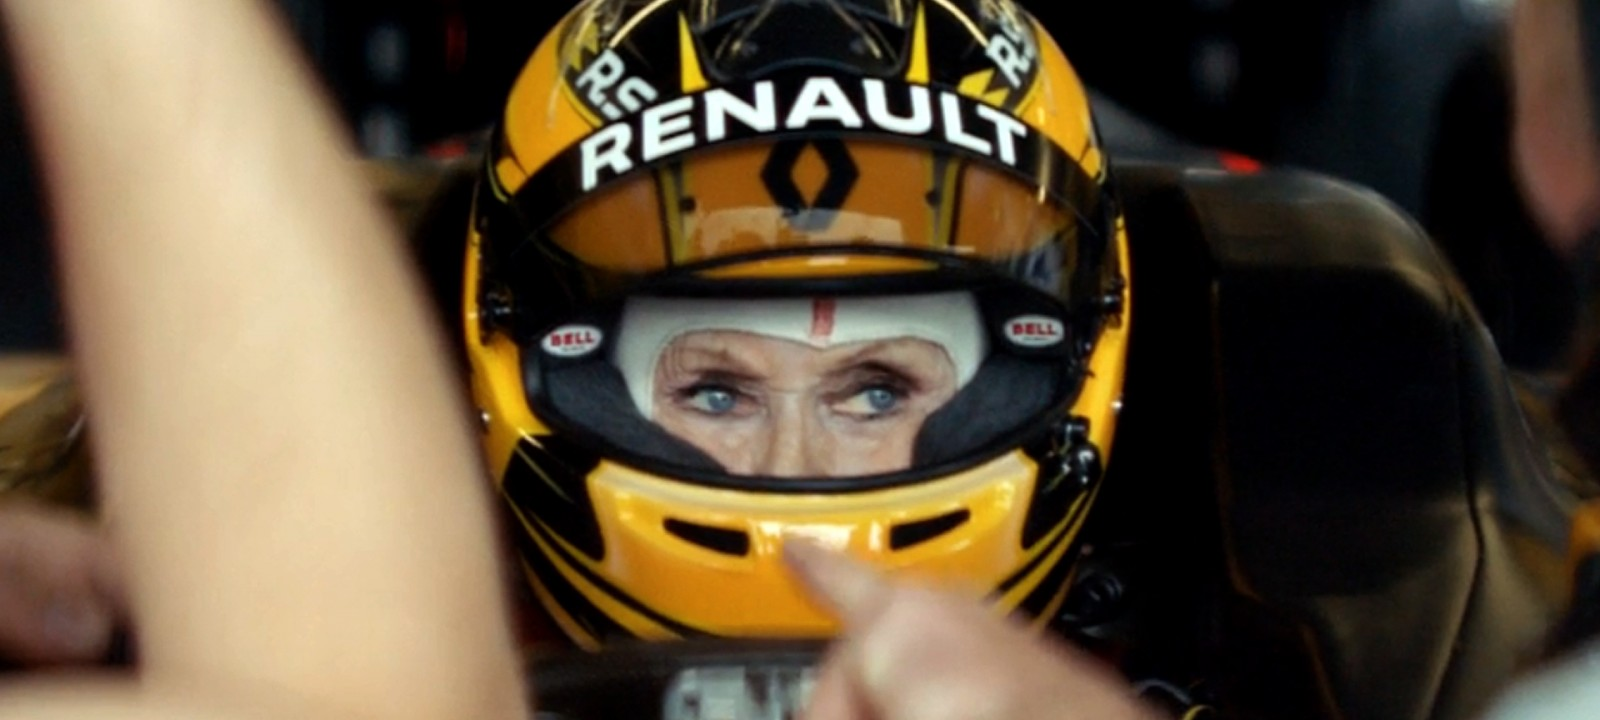 Renault - The Ultimate Test Drive